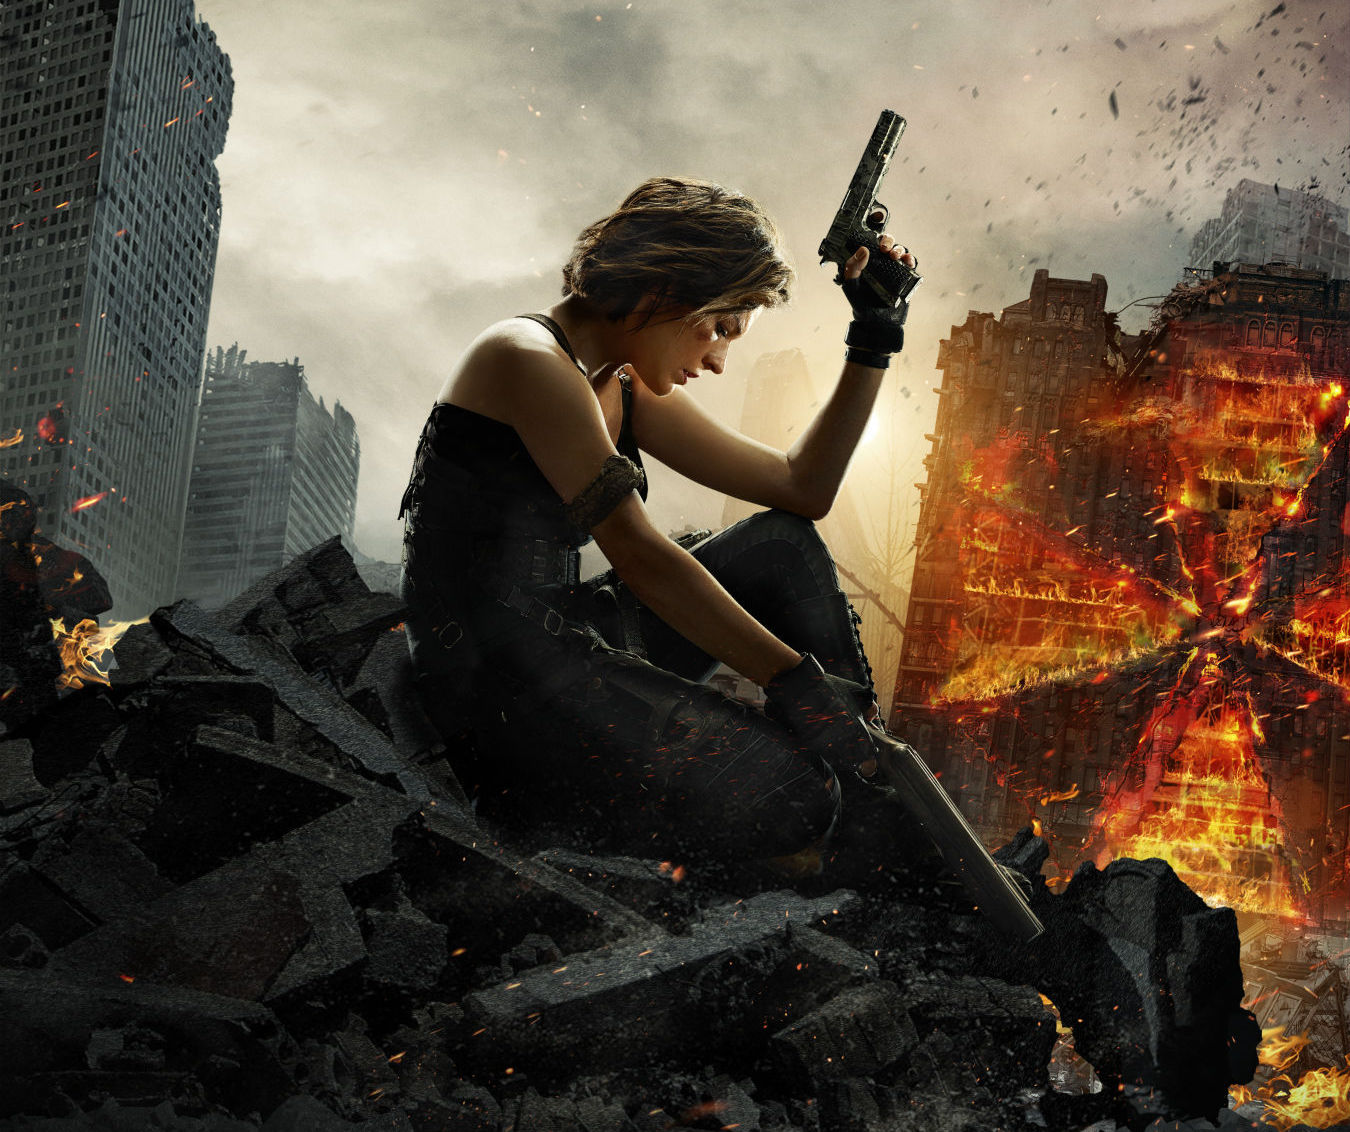 'Resident Evil: The Final Chapter' Now Has a Trailer and Posters